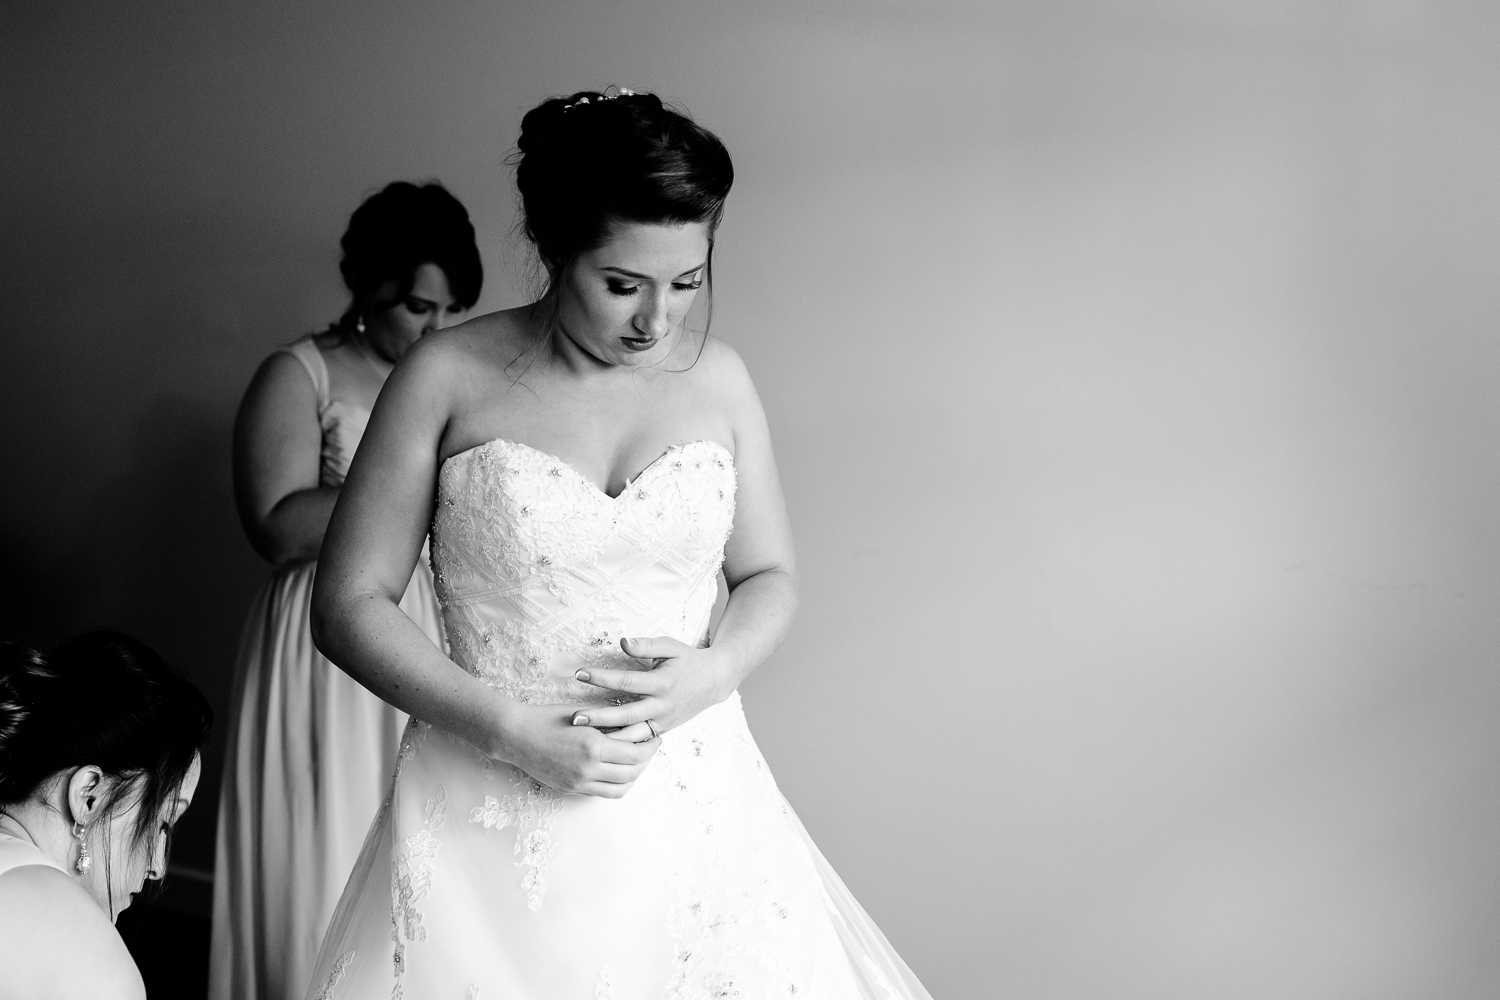 Black and white image of a bride putting on her wedding gown. Her bridesmaids help her.